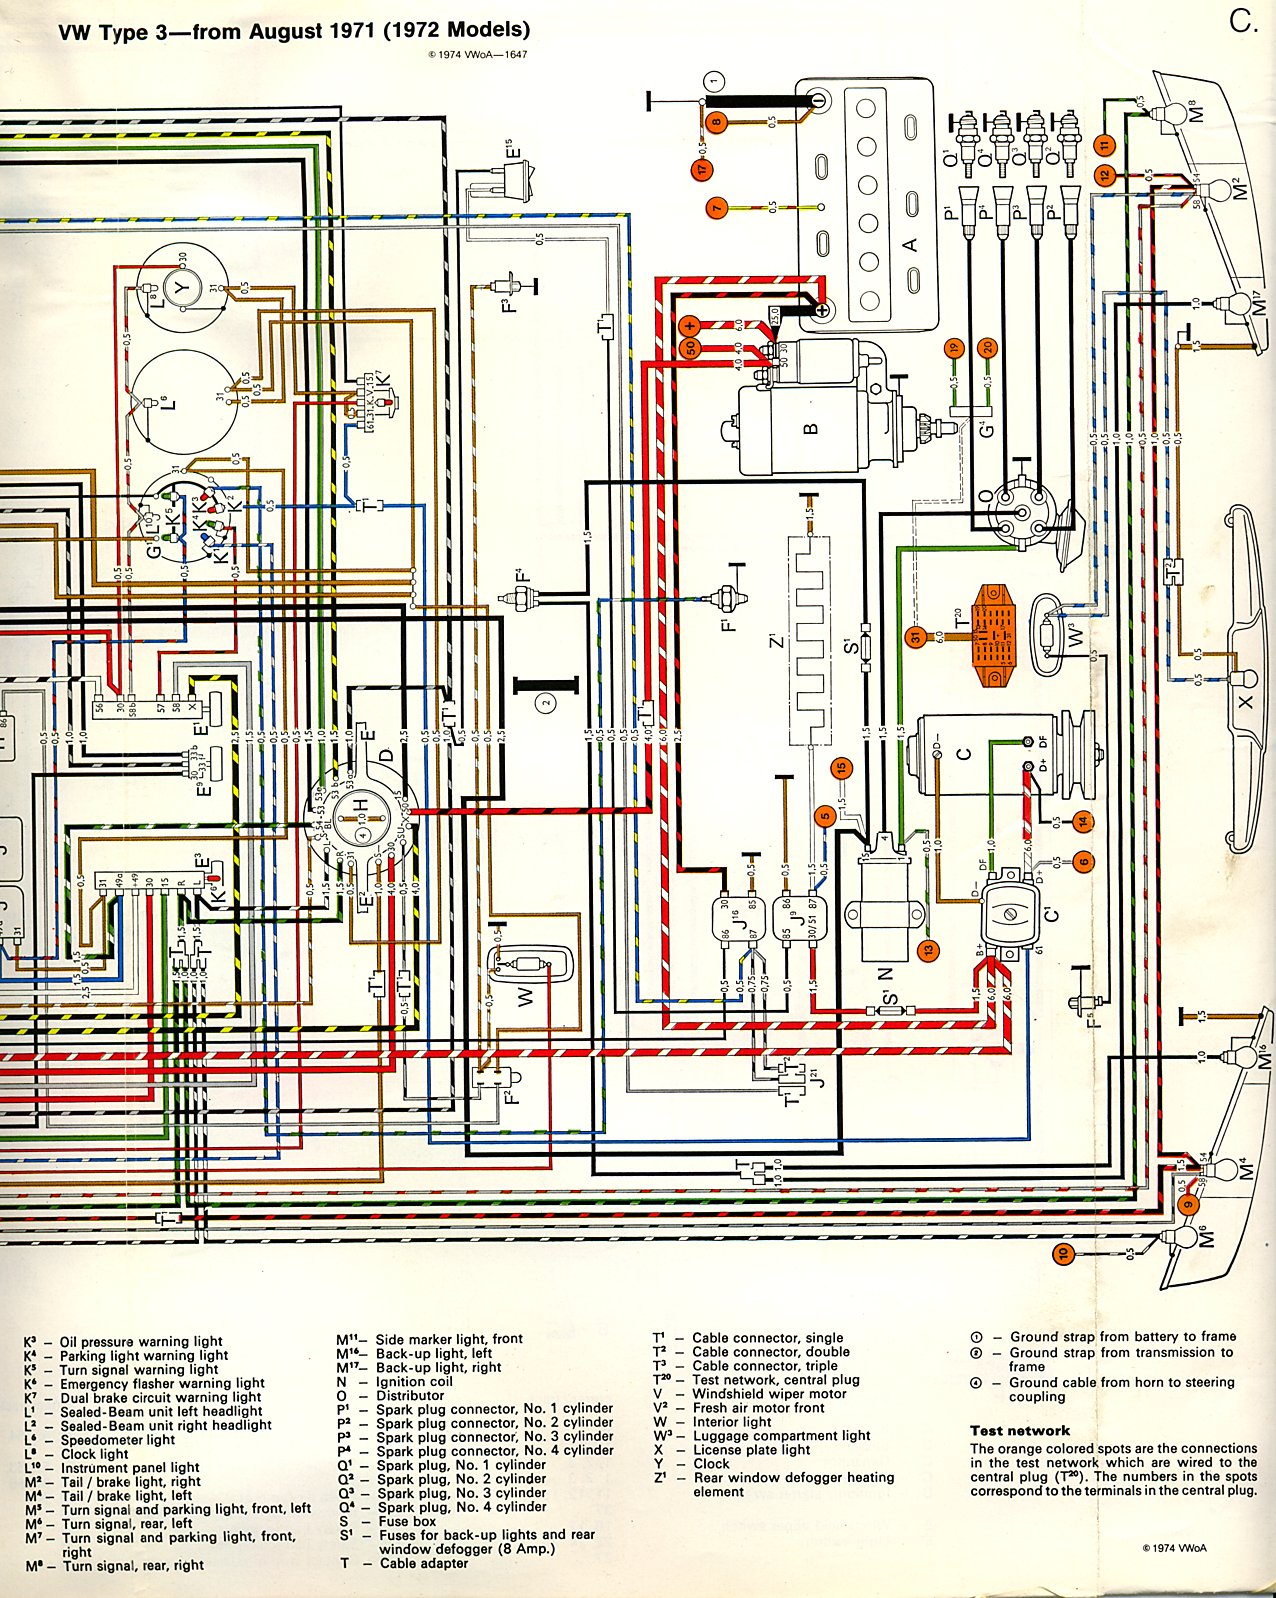 fuse diagram for 1973 vw super beetle thesamba com type 3 wiring diagrams 1971 vw super beetle fuse diagram